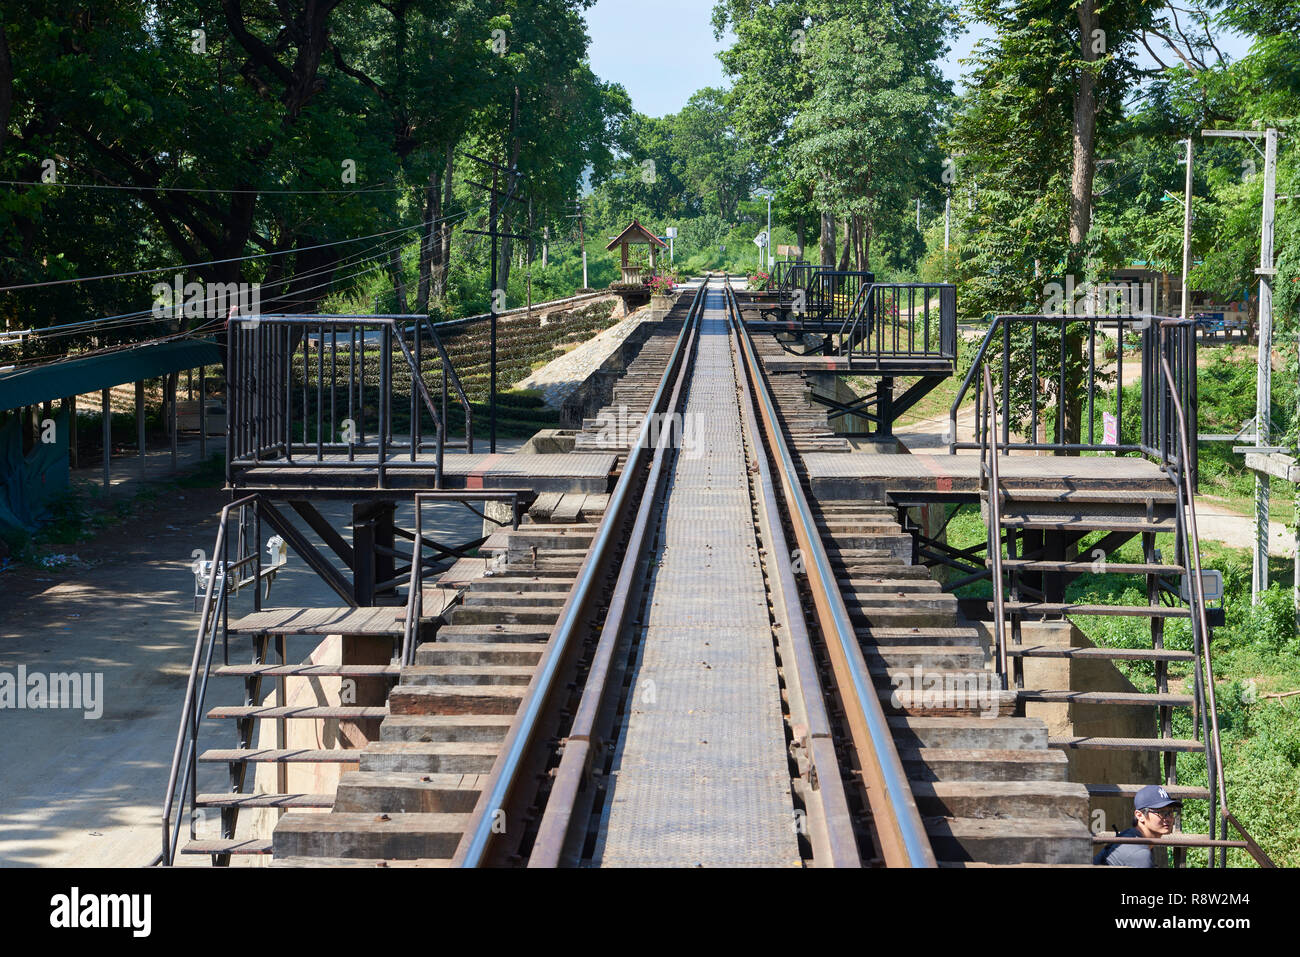 Rail tracks of the Siam-Burma Railway over River Kwai in Kanchanaburi, Thailand. The infamous bridge has become a tourist destination for the well-doc - Stock Image